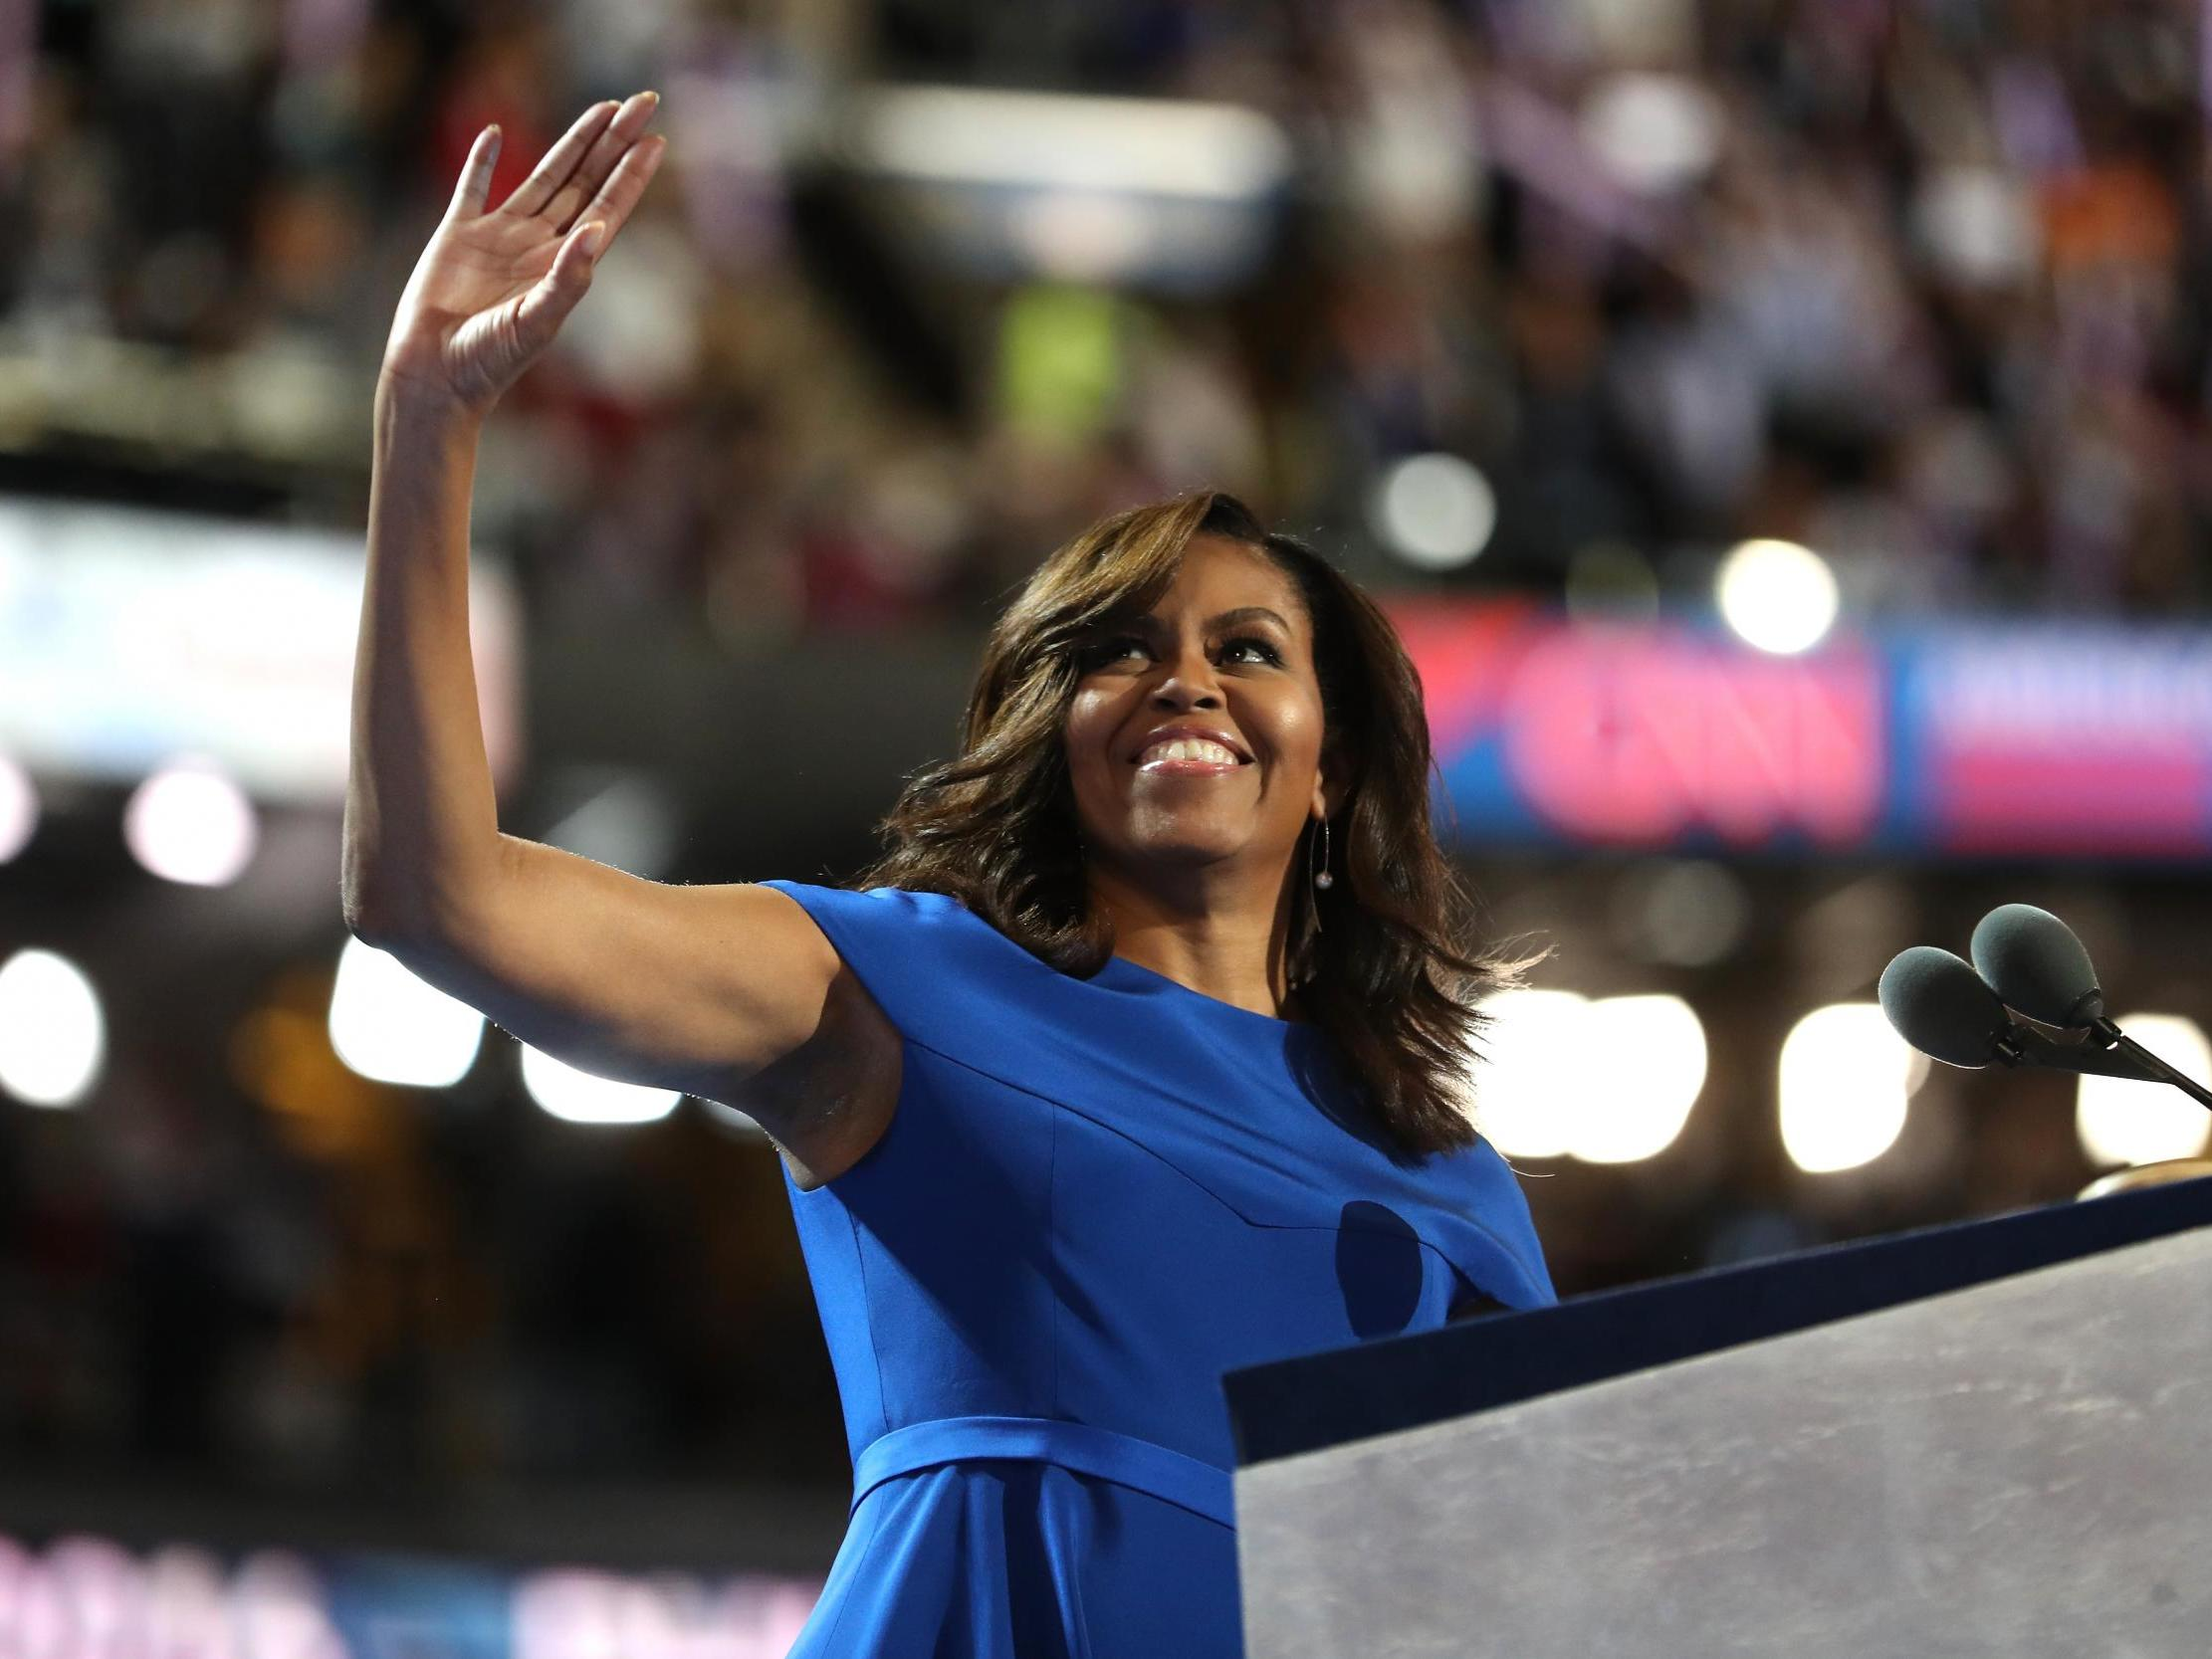 Michelle Obama petitioned to run as VP to stop Bernie Sanders, report says - independent